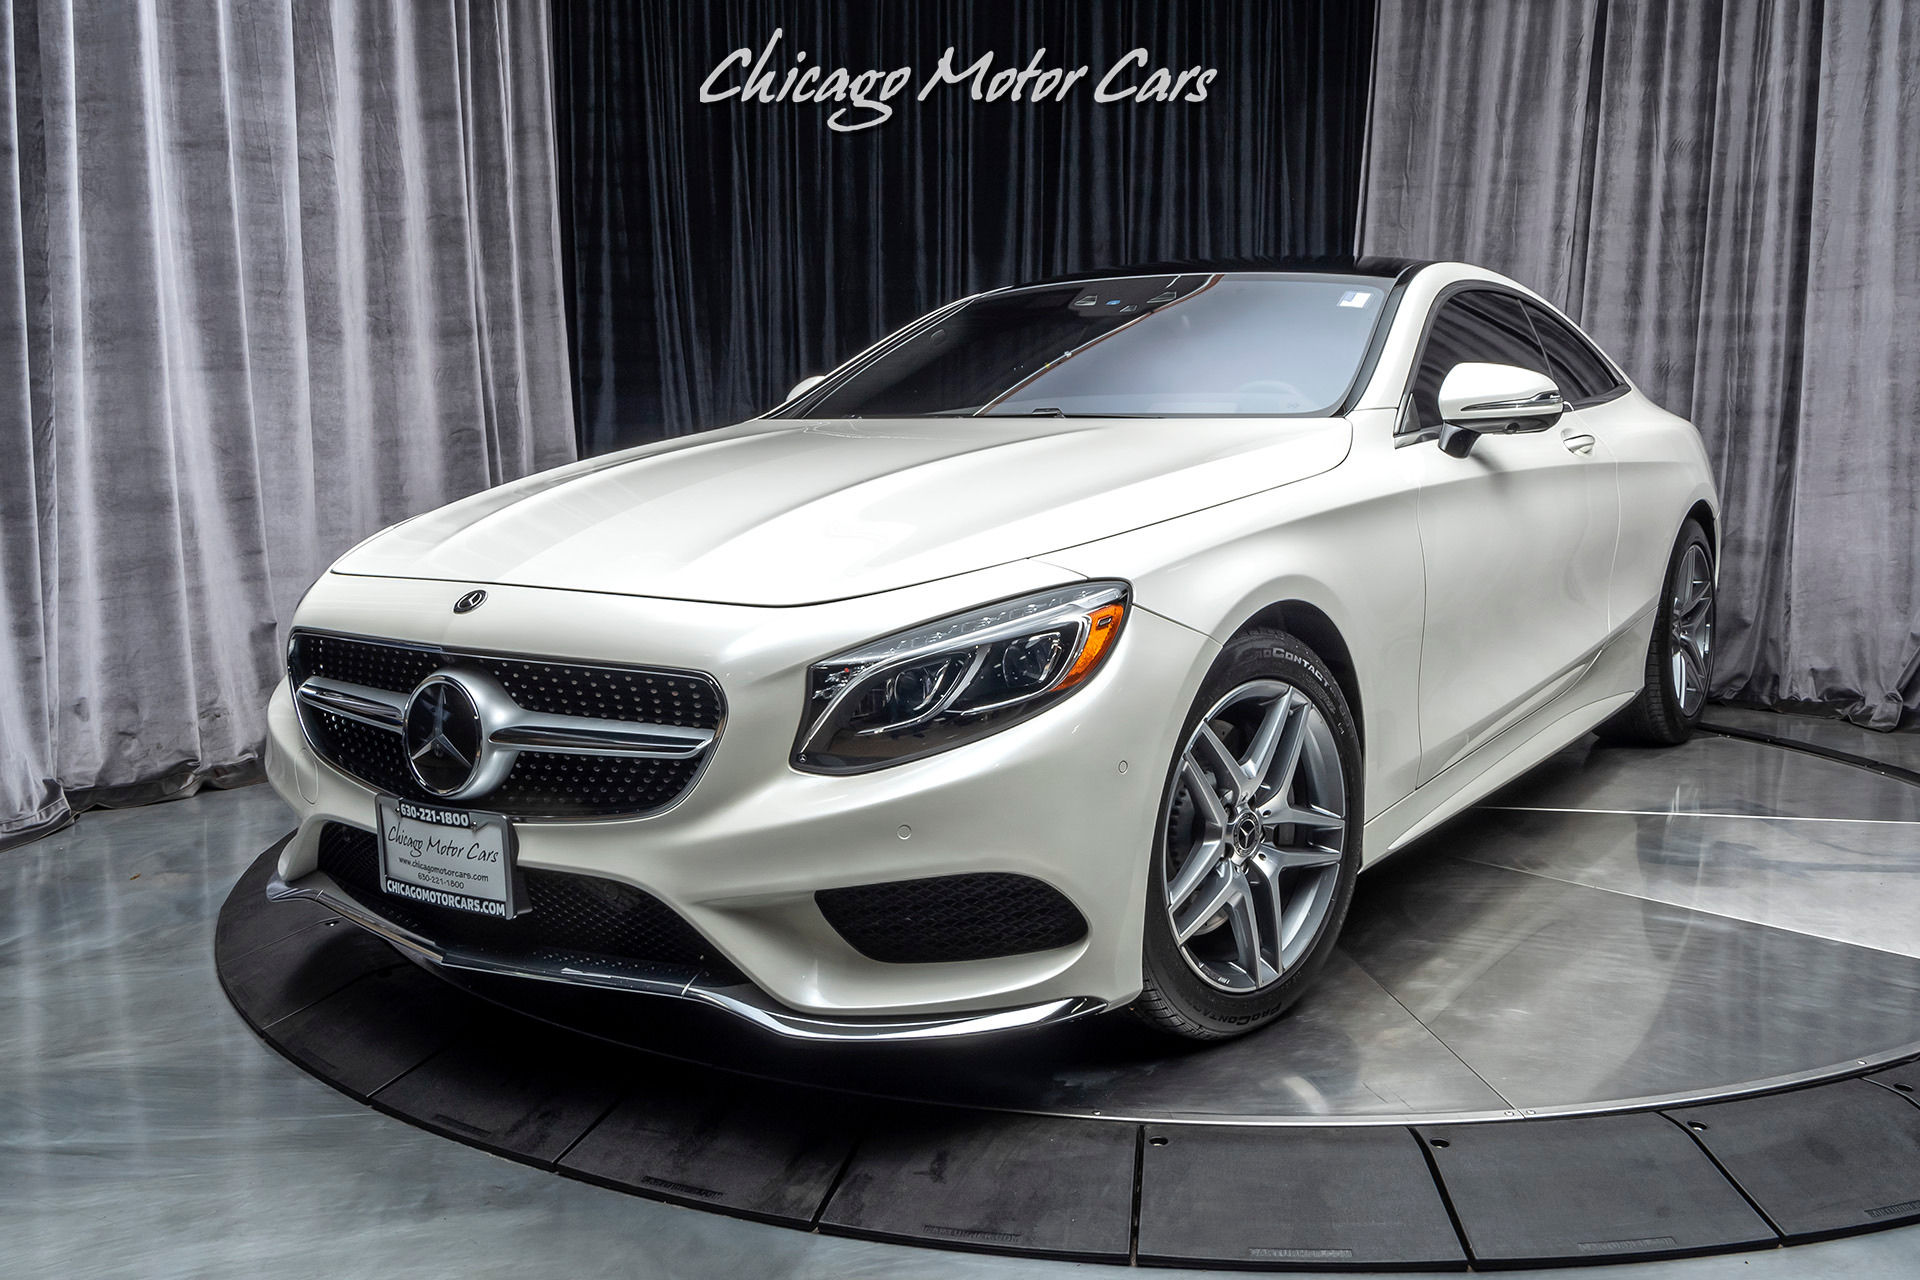 2017 Mercedes Benz S550 4 Matic Coupe Sport Package Chicago Motor Cars Inc Official Corporate Website For Chicago Motor Cars